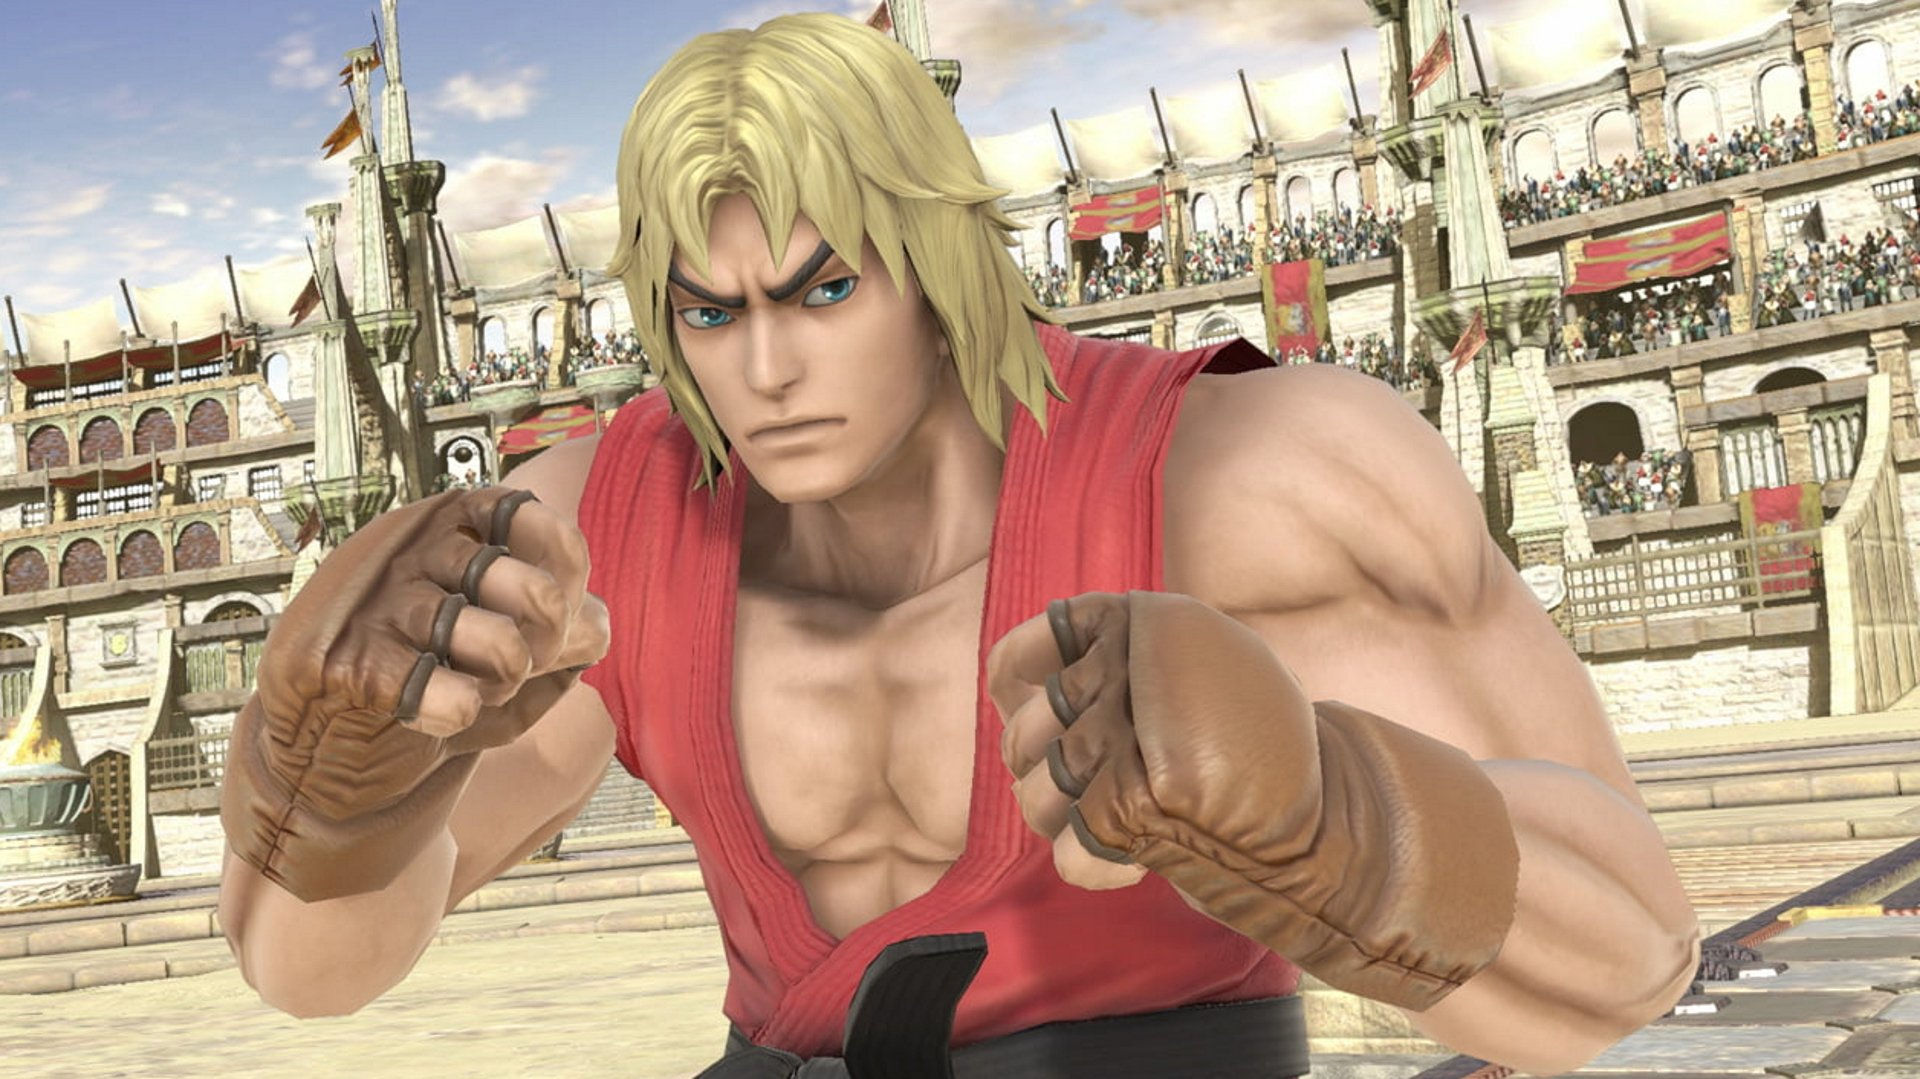 Ken looks read for a fight. How to unlock Ken in Super Smash Bros Ultimate